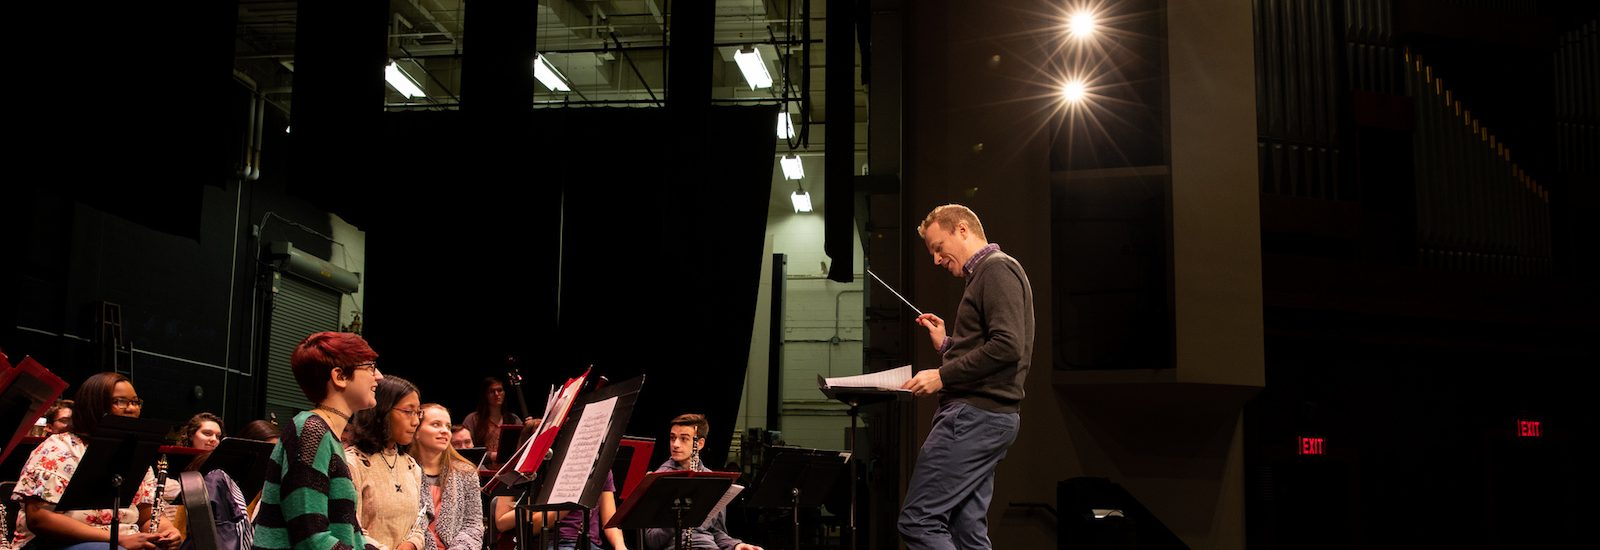 Professor Higgins conducting the ensemble on stage in Pfleeger Hall